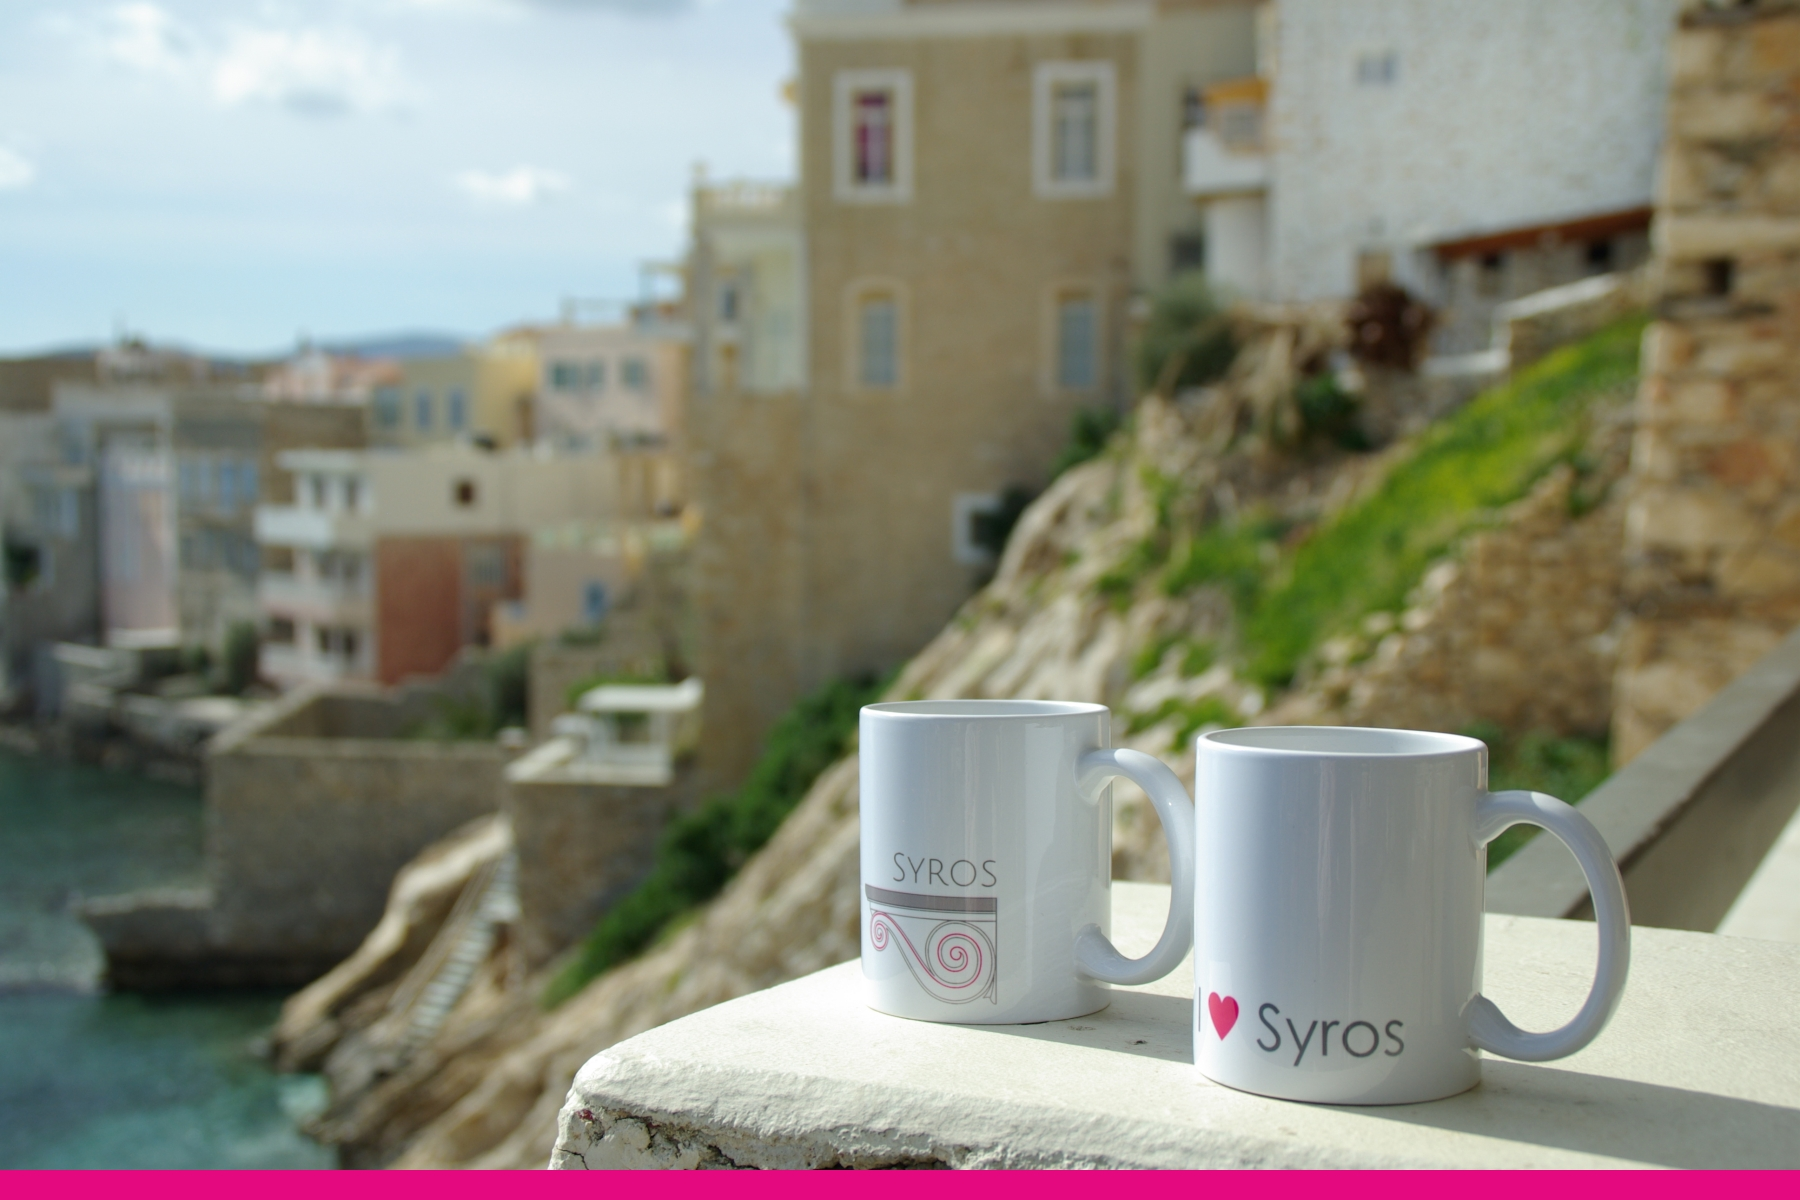 Coffee mugs from Syros